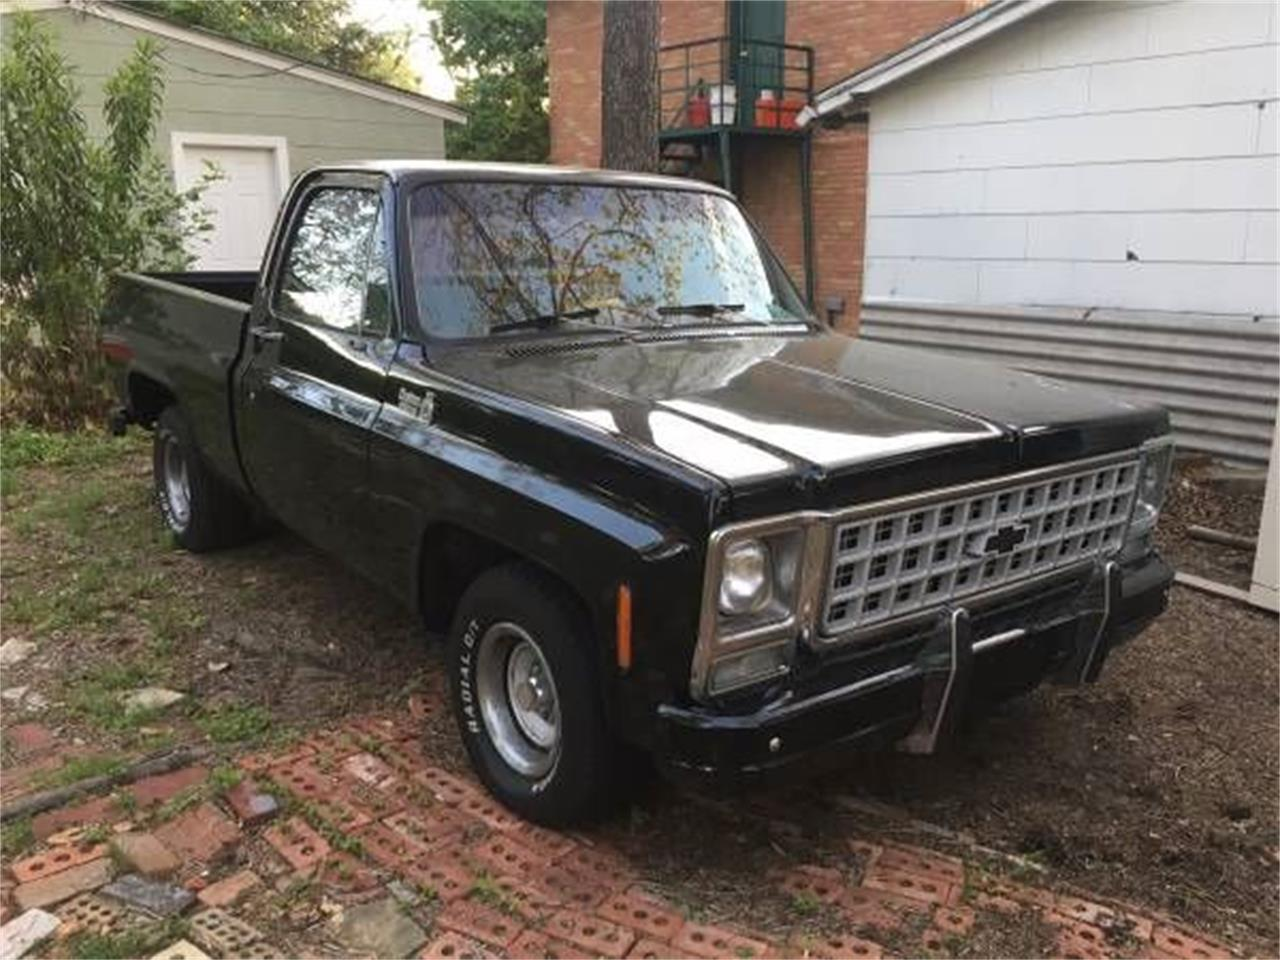 1980 chevrolet c10 for sale classiccars cc 1120408 1974 Chevrolet C10 Specifications large picture of 80 c10 o0ig